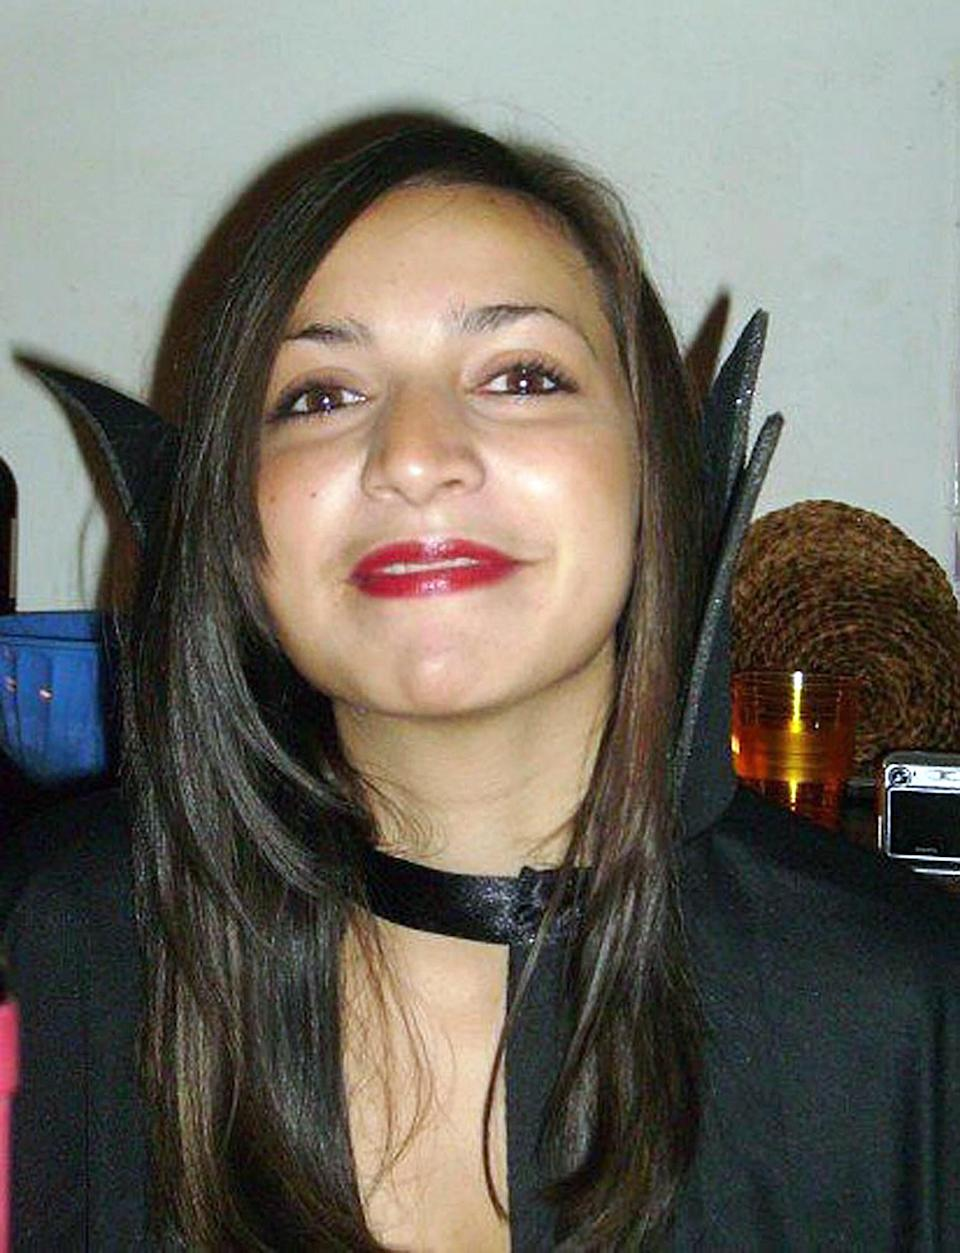 Londoner Meredith Kercher was an exchange student at the University of Perugia in 2007 when she was murdered in the flat she shared with KnoxAFP/Getty